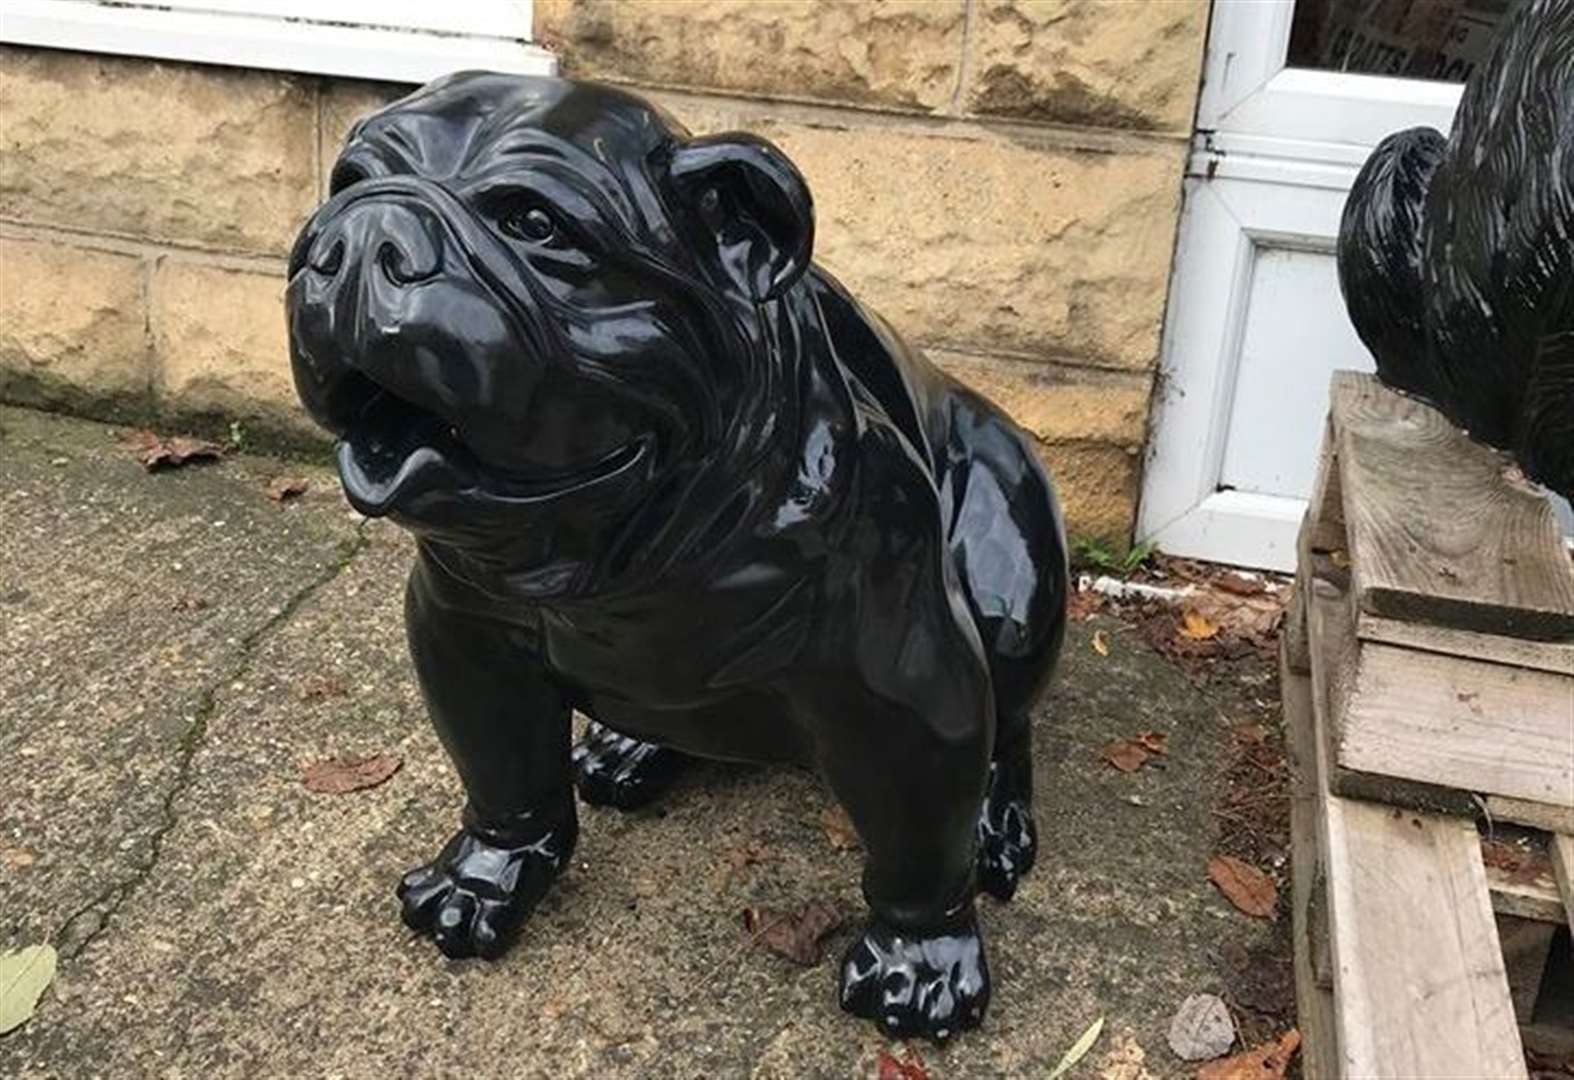 Black bulldog sculpture is stolen from outside shop